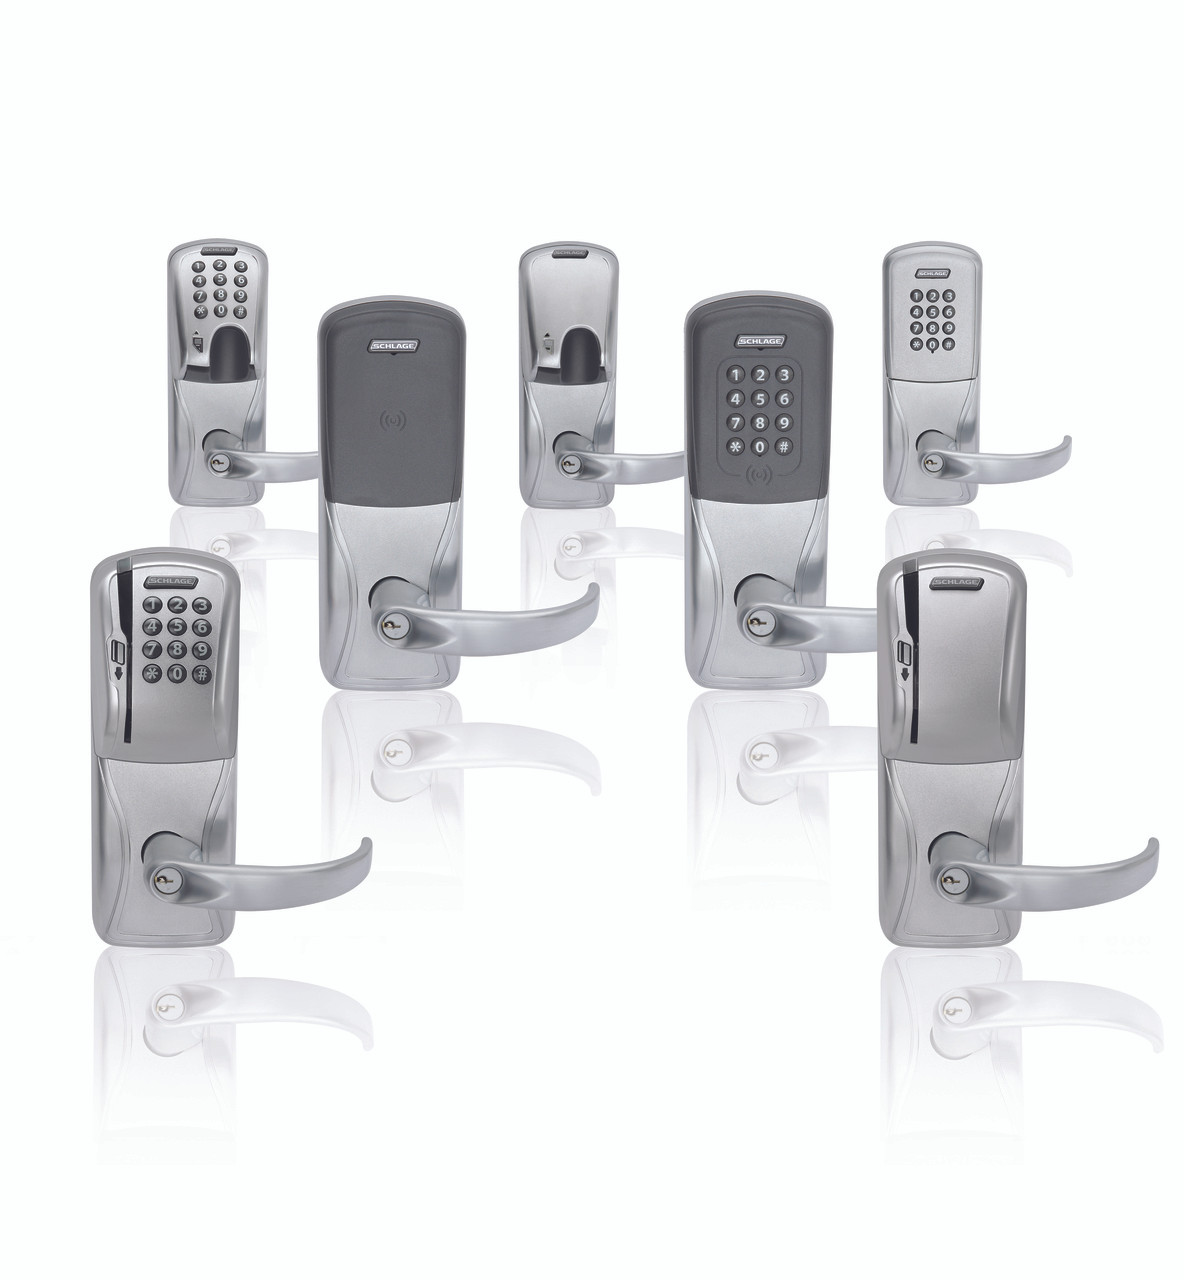 Schlage Ad300 Lock Wiring Diagram Electrical Diagrams Electronic Ad 400 Series Networked Wireless Locks Exit Trim